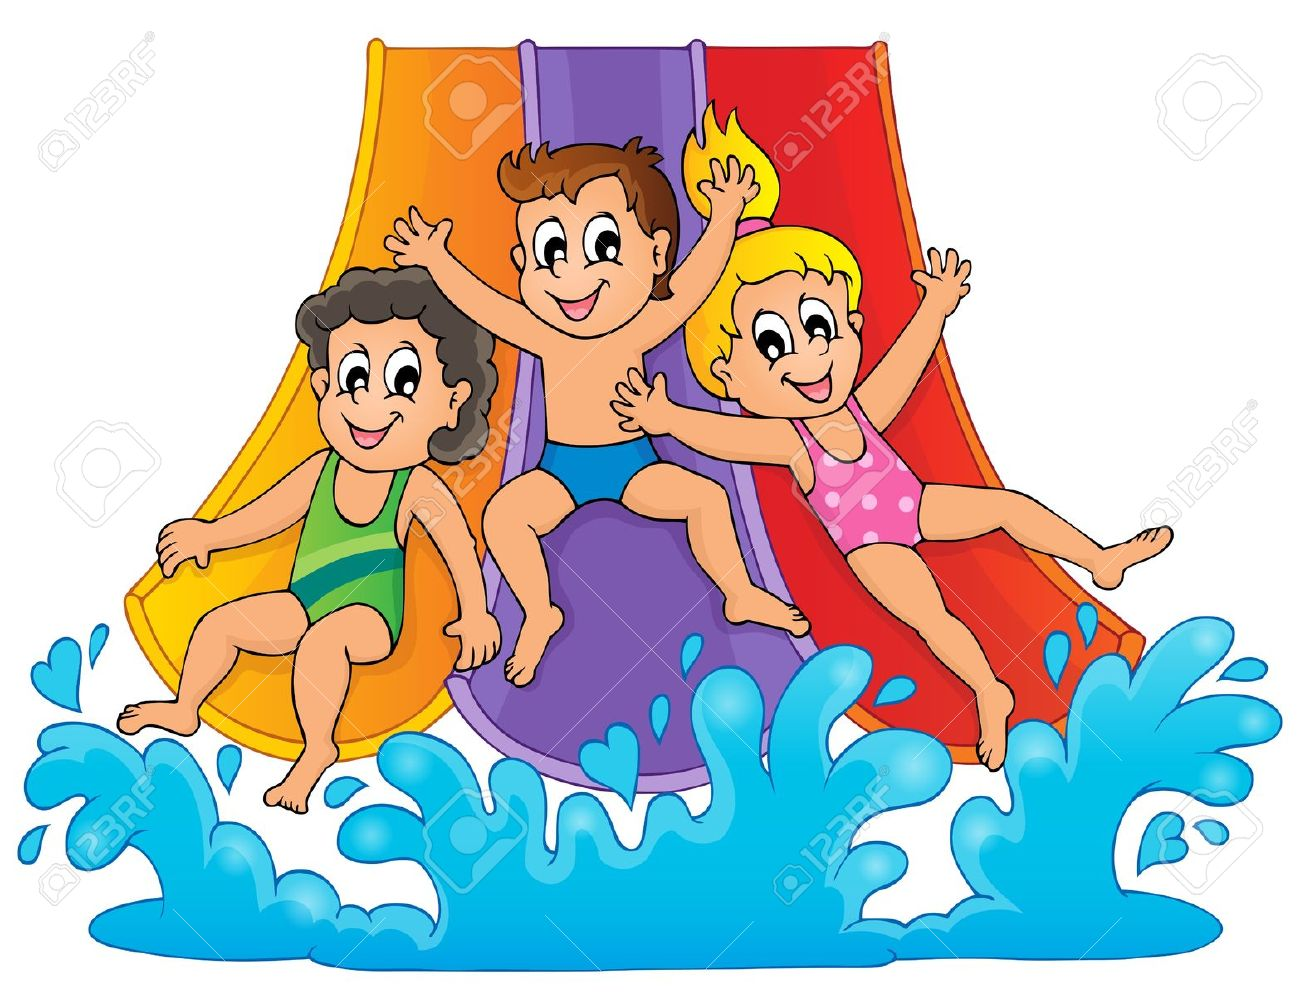 Image With Aqua Park Theme Royalty Free Cliparts, Vectors, And.